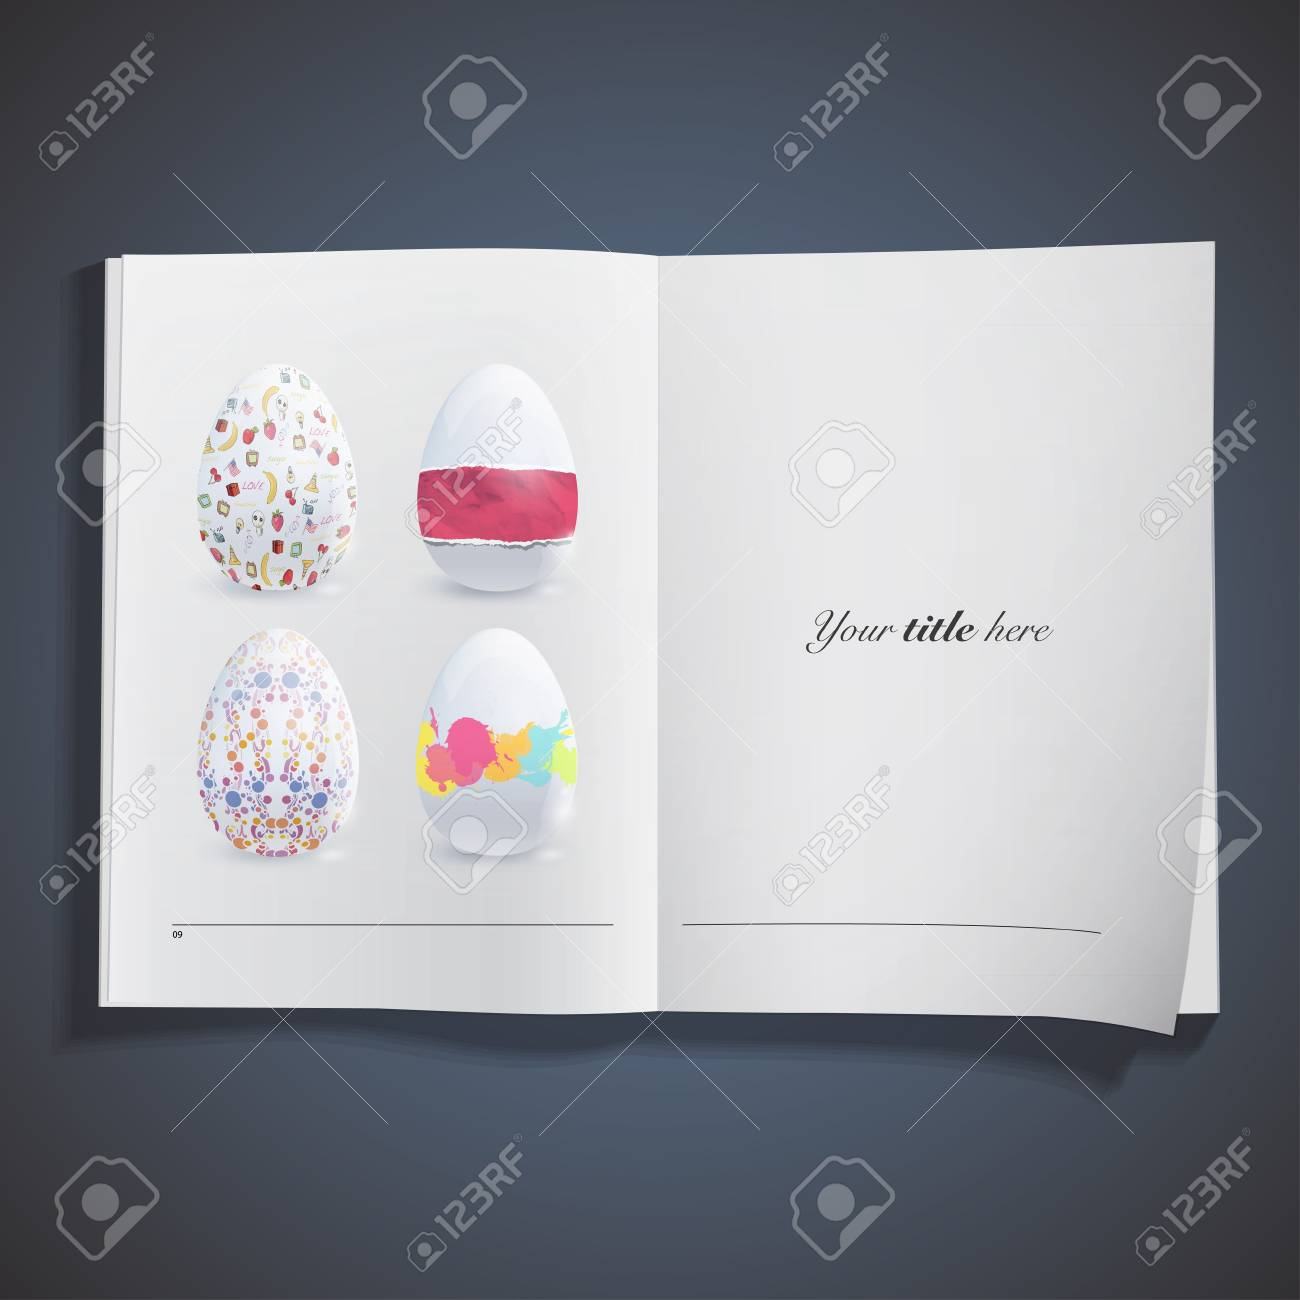 Easter egg with cute designs design. Stock Vector - 19267171